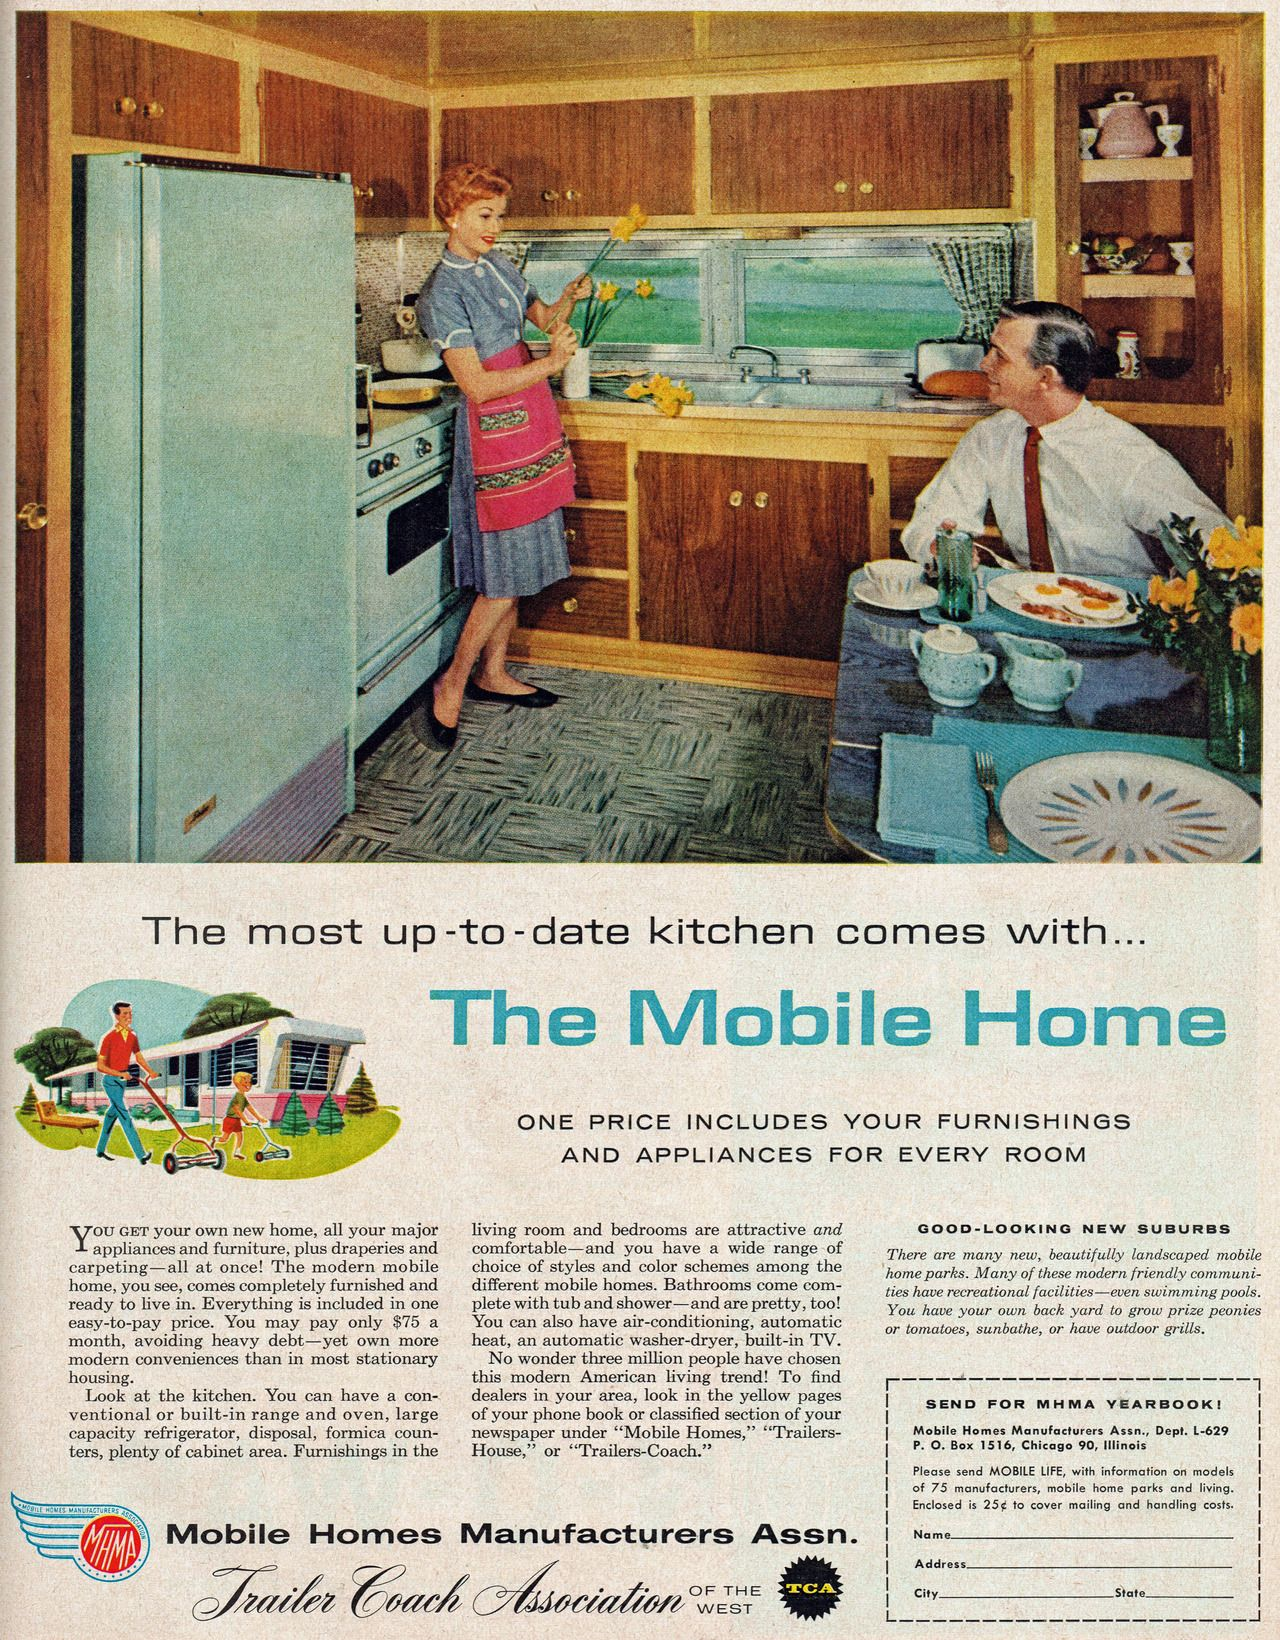 1950's mobile home park - Bing images   Mobile Homes ... on volkswagen mobile home, smart mobile home, kelly mobile home, ford mobile home, tiffany mobile home, nelson mobile home, white mobile home, 1971 mobile home, anderson mobile home, bmw mobile home, spartan mobile home, brown mobile home, mini mobile home, graham mobile home, detroiter mobile home, lamborghini mobile home, 1960s mobile home, 1980 mobile home, toyota mobile home, bentley mobile home,